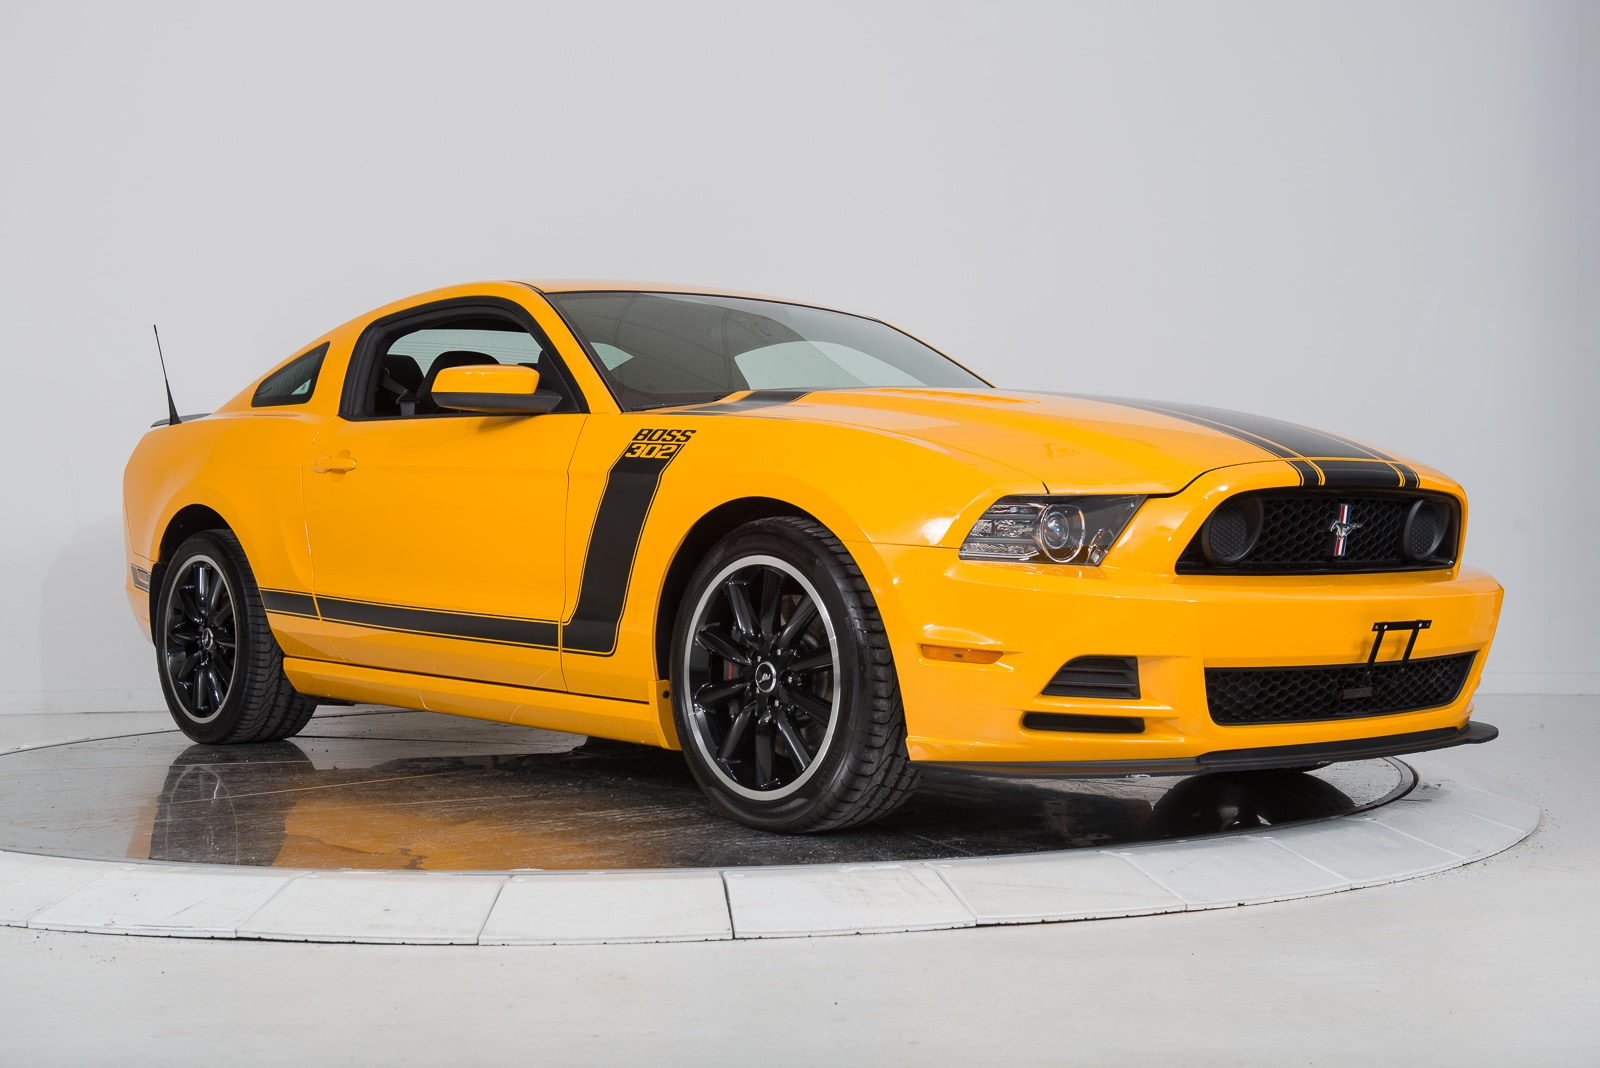 used 2013 ford mustang boss 302 in yellow for sale ferrari of fort lauderdale. Black Bedroom Furniture Sets. Home Design Ideas